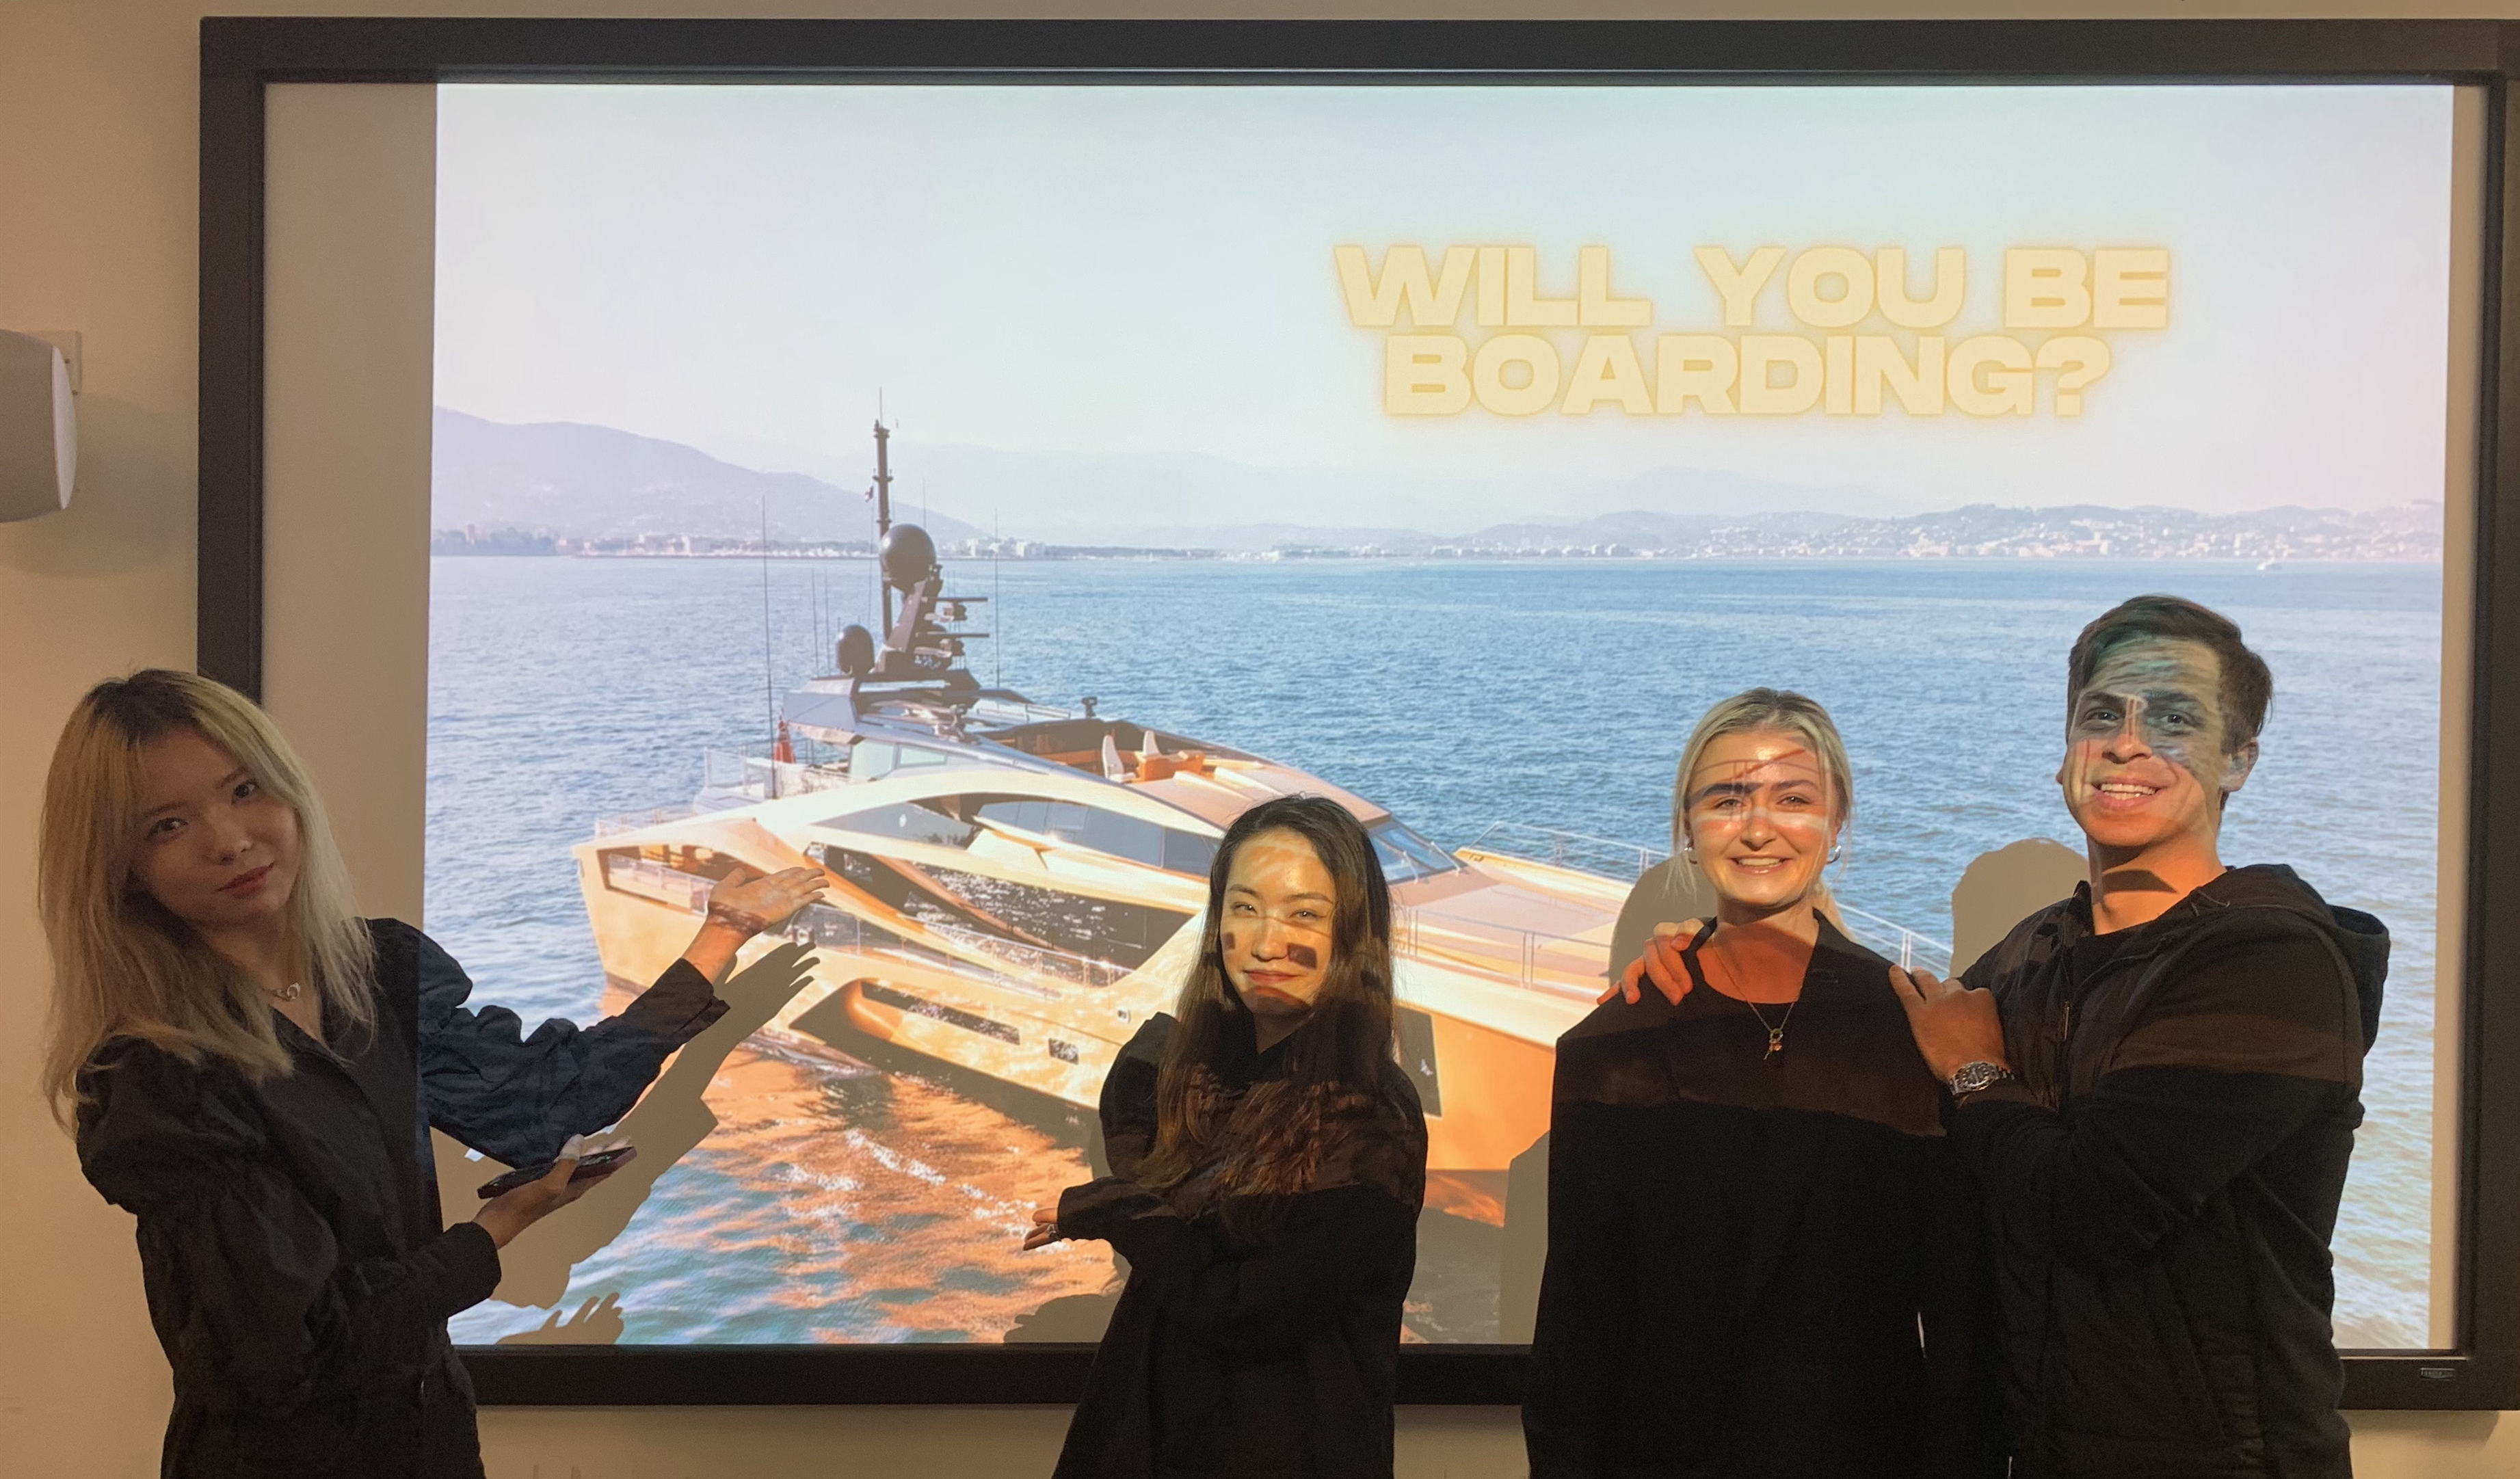 four students posed in front of a projector in a classroom